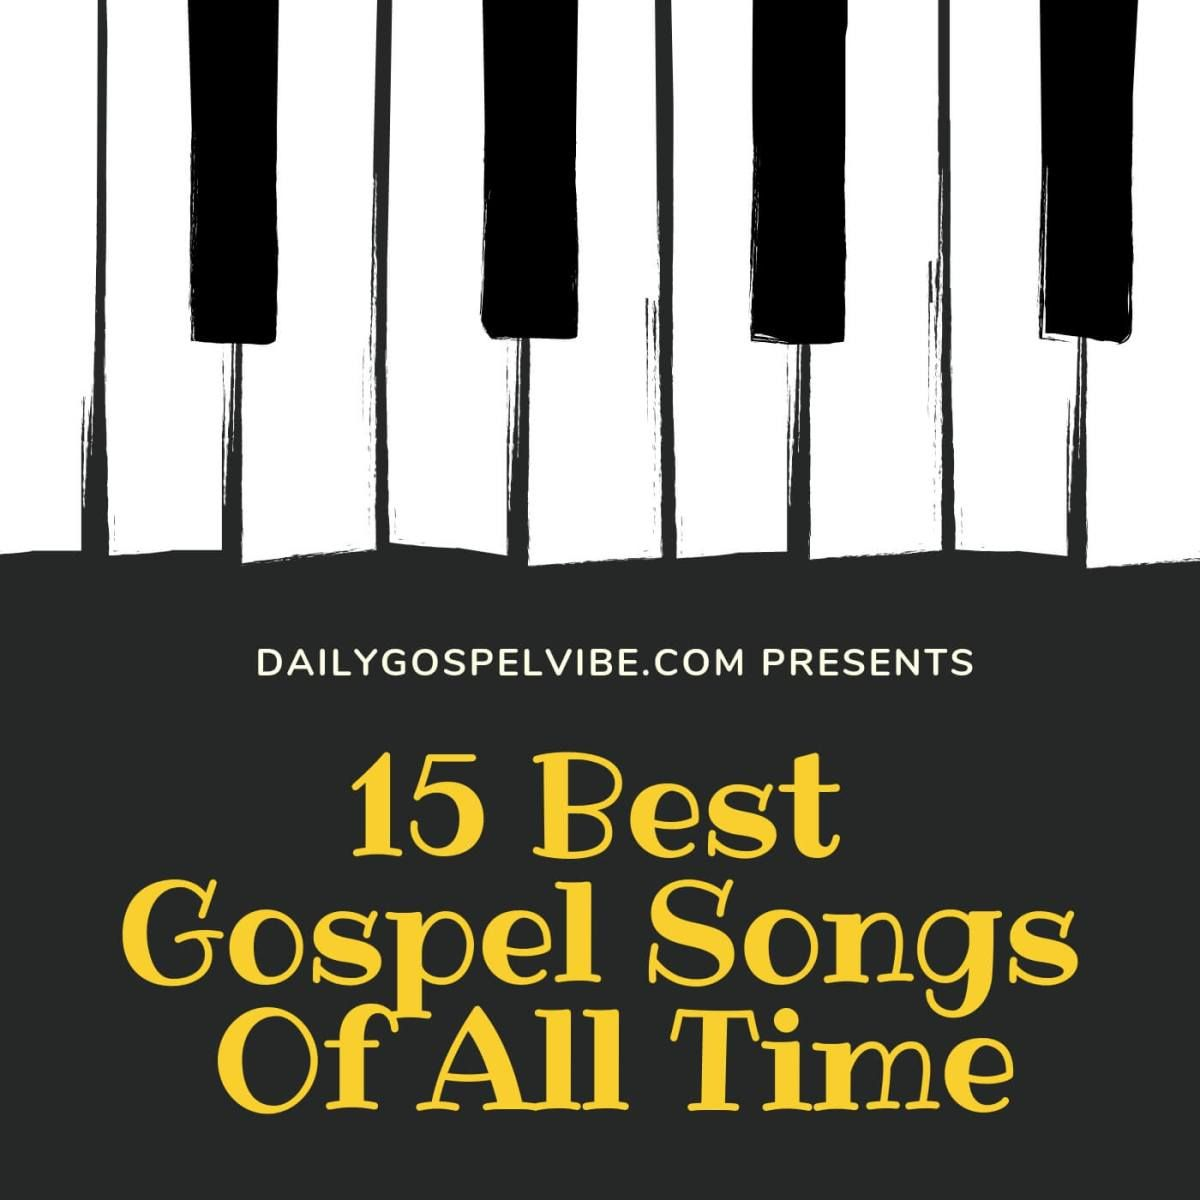 Audio: Download 15 List of Gospel Worship Songs of All Time